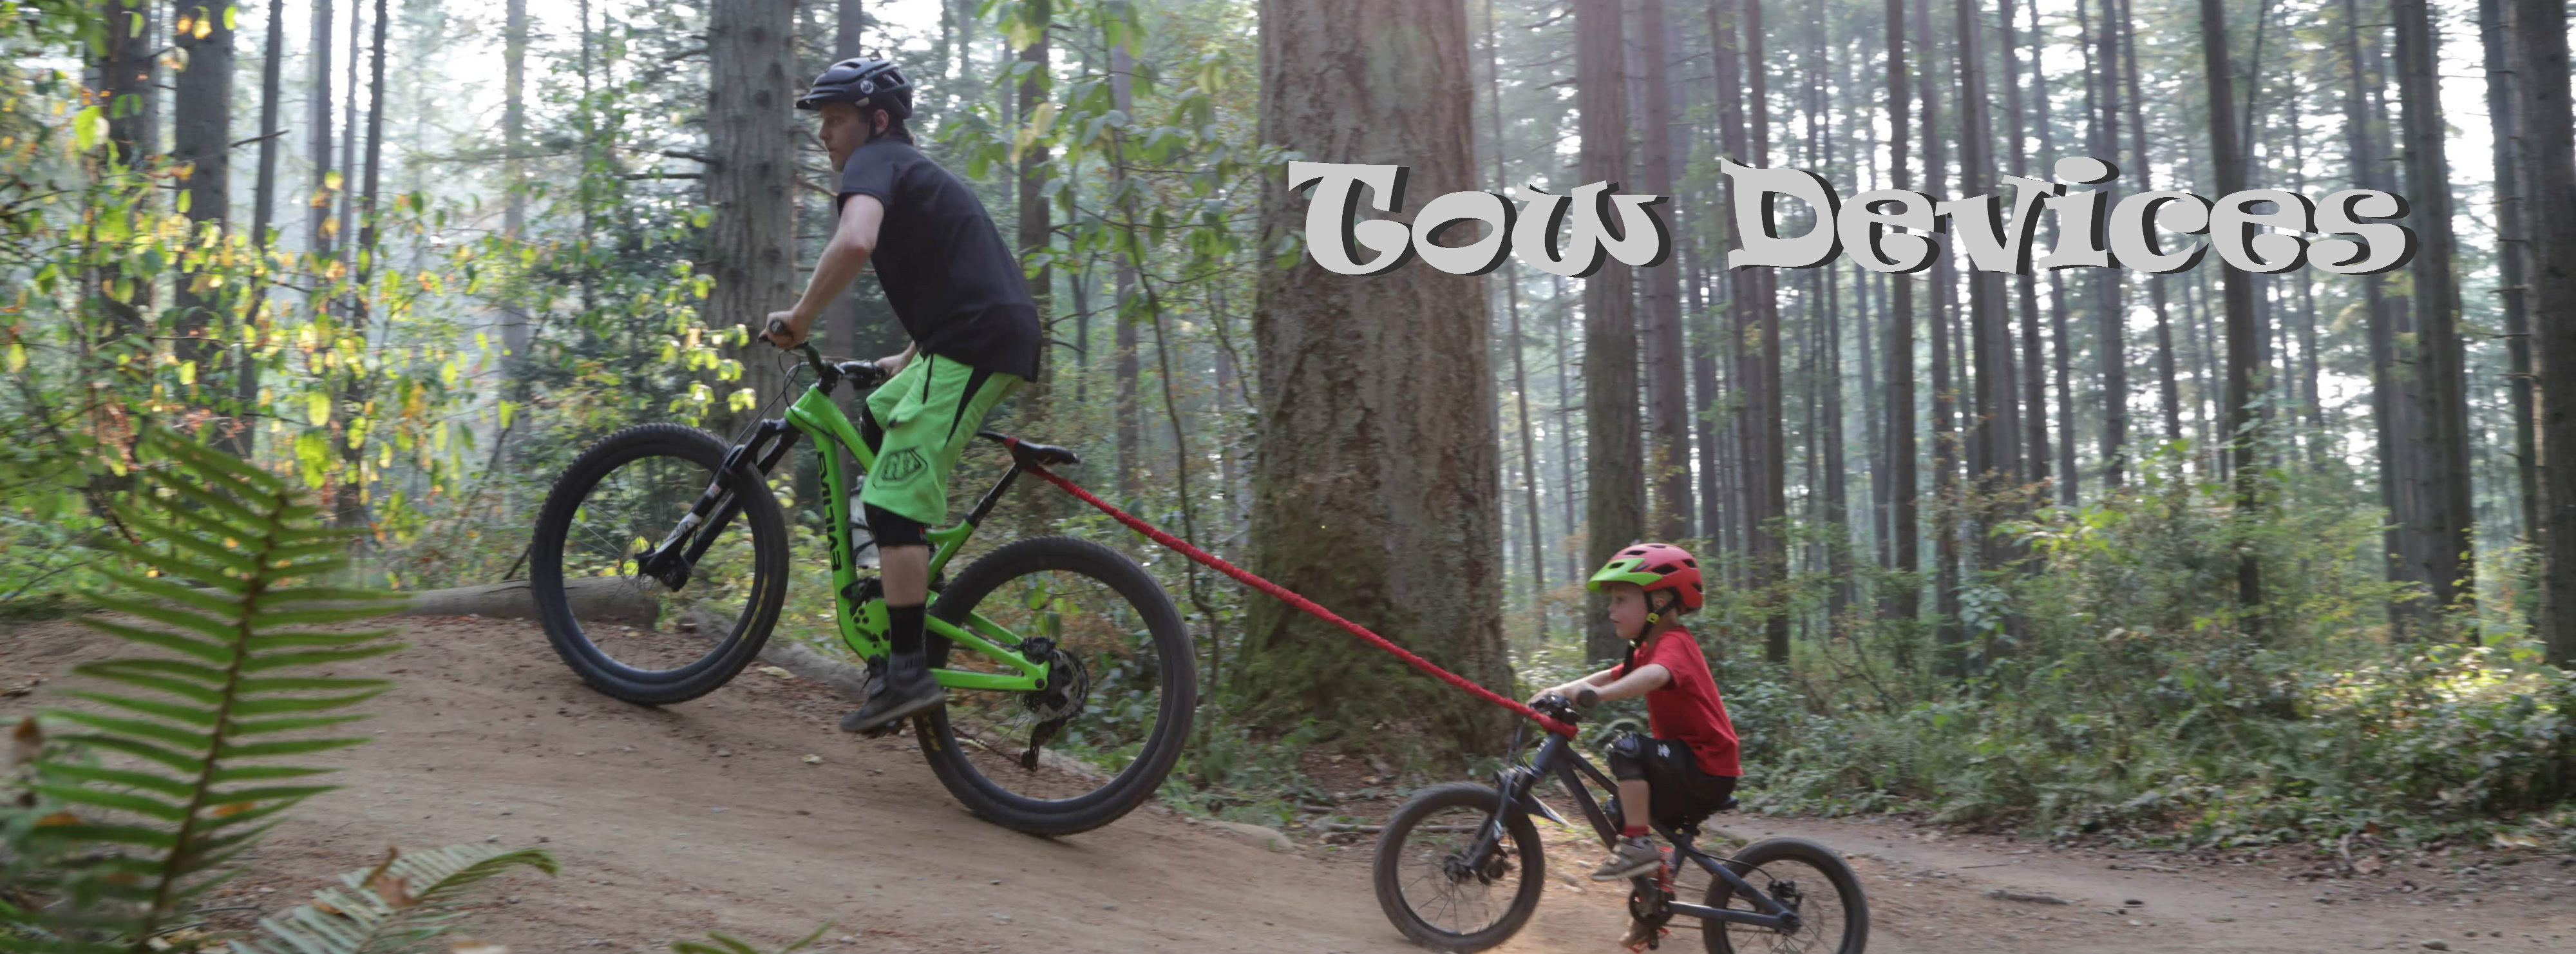 c0bfac6a608 Weight: 19-23 lbs | MSRP: $950-$1400 | Where to buy: Flow Kids Bikes